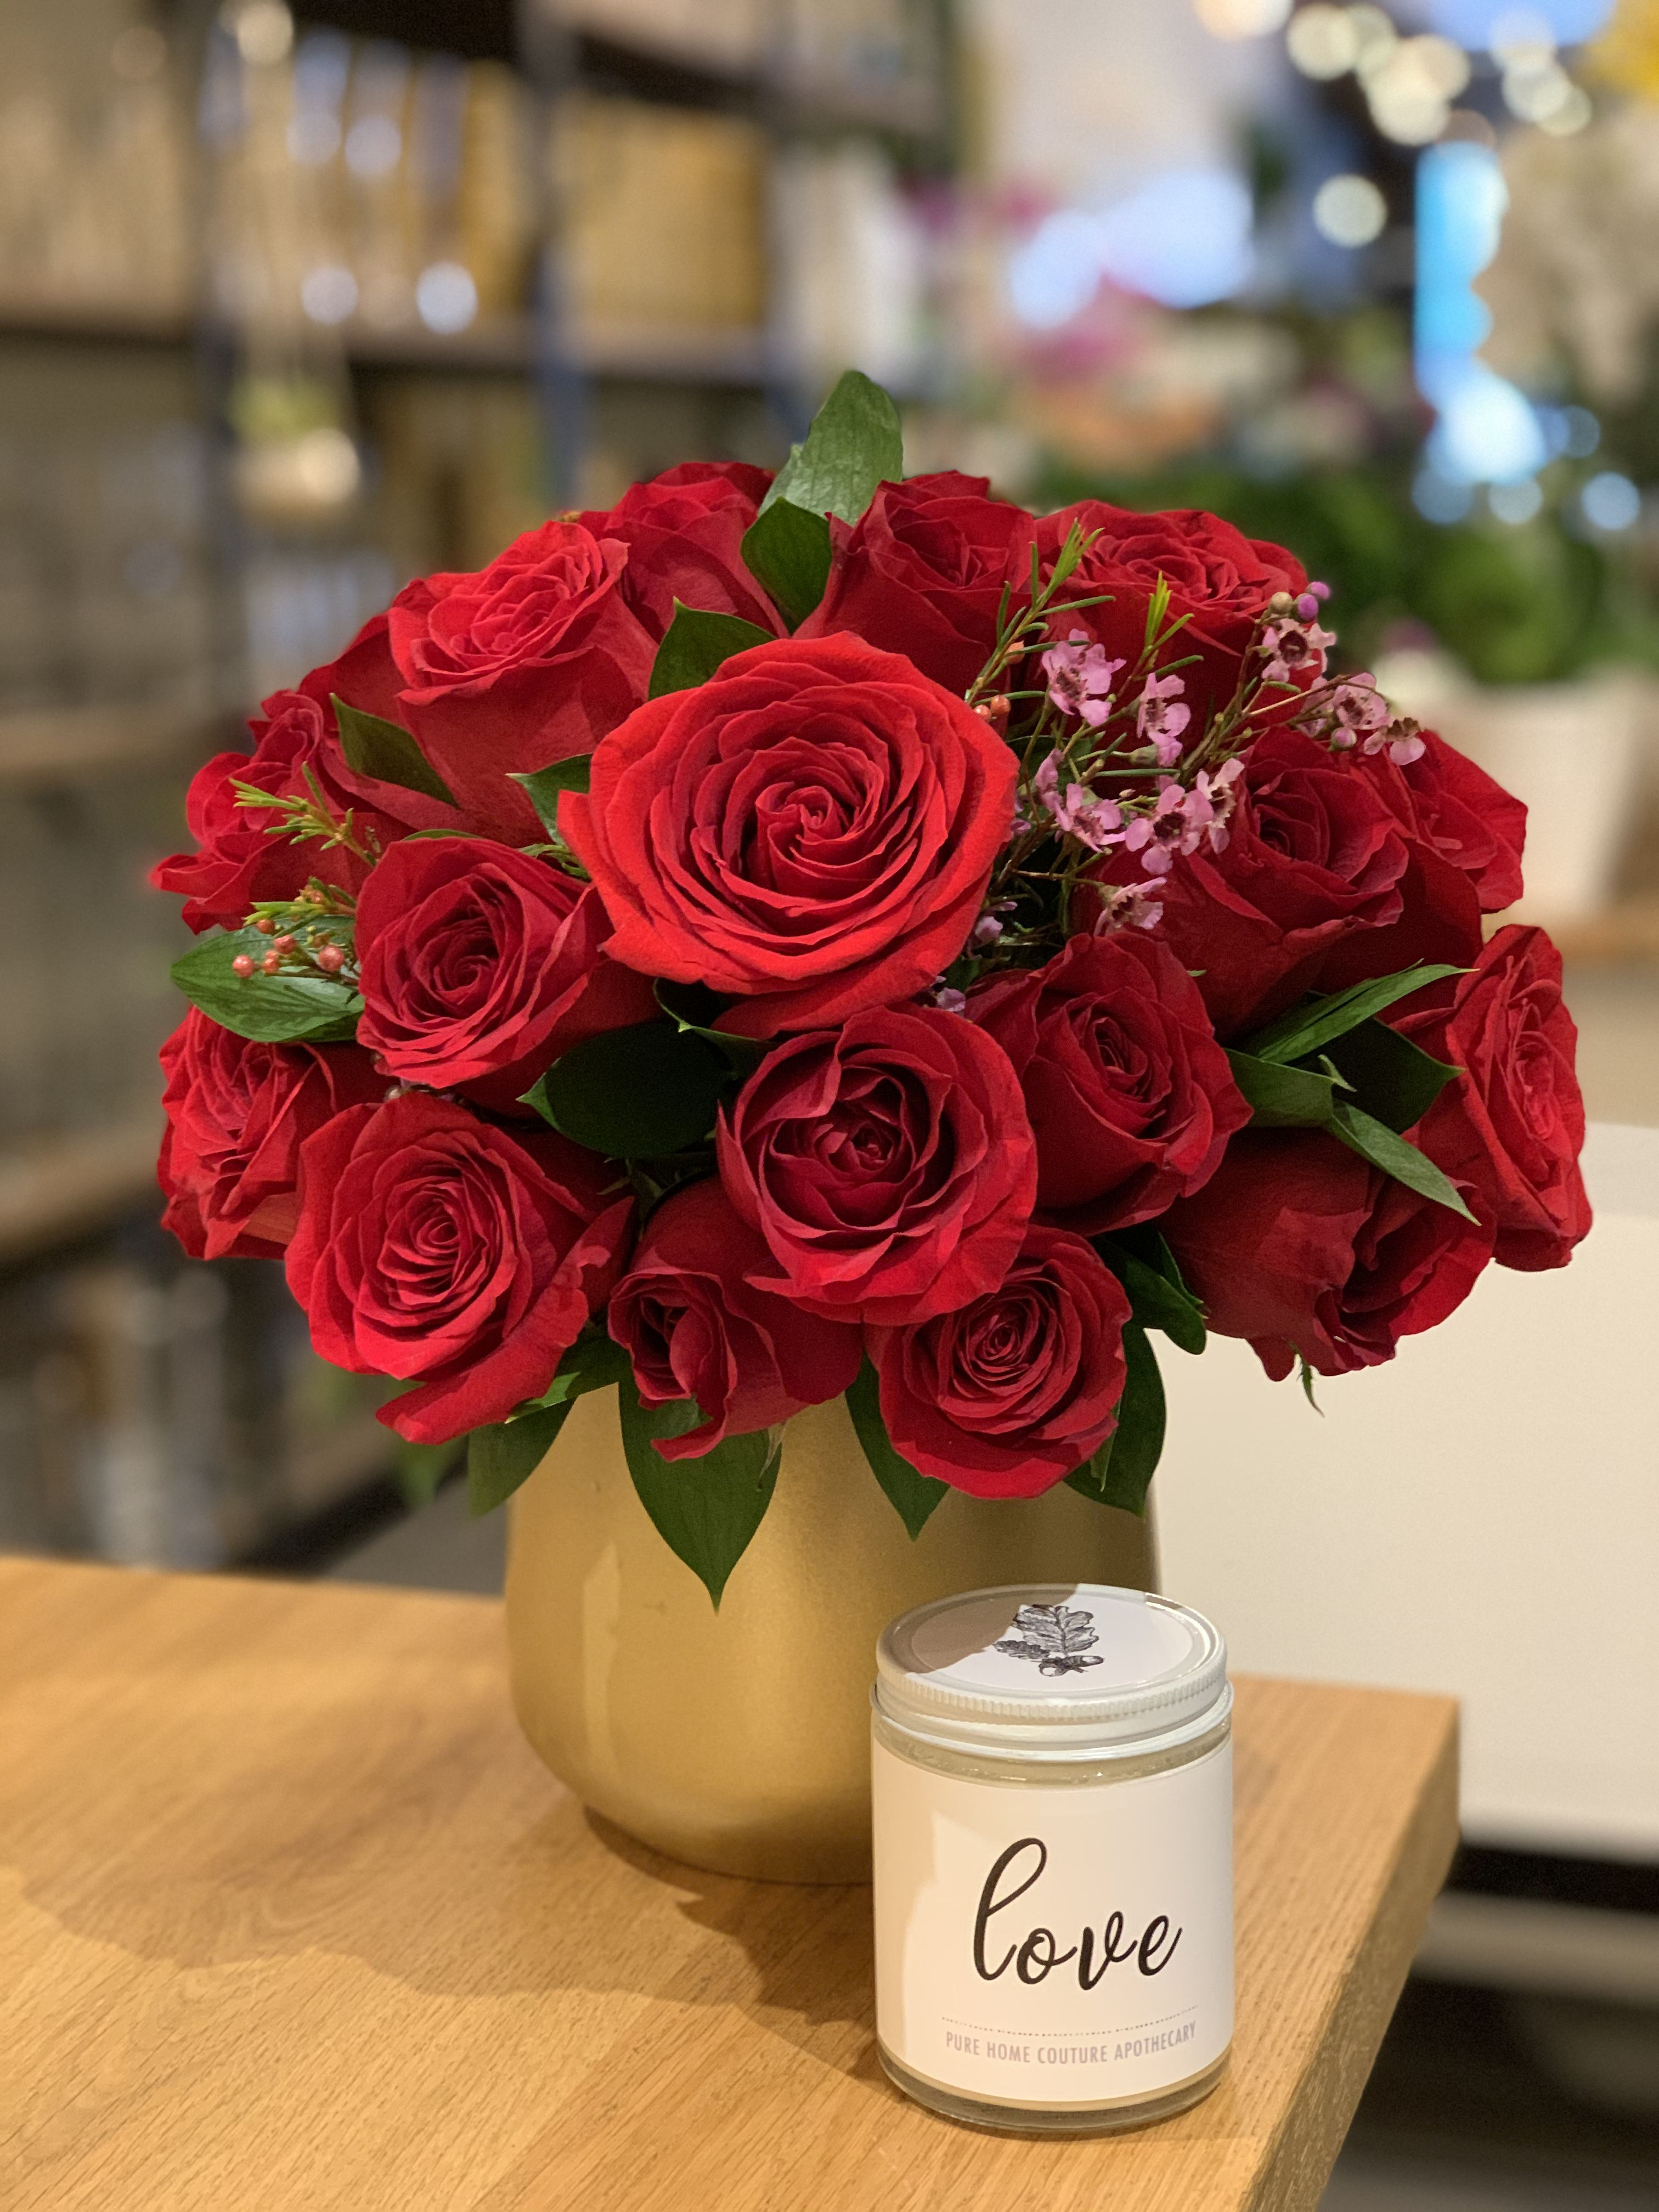 Pin by Danielle Cook on wedding in 2020 Order flowers